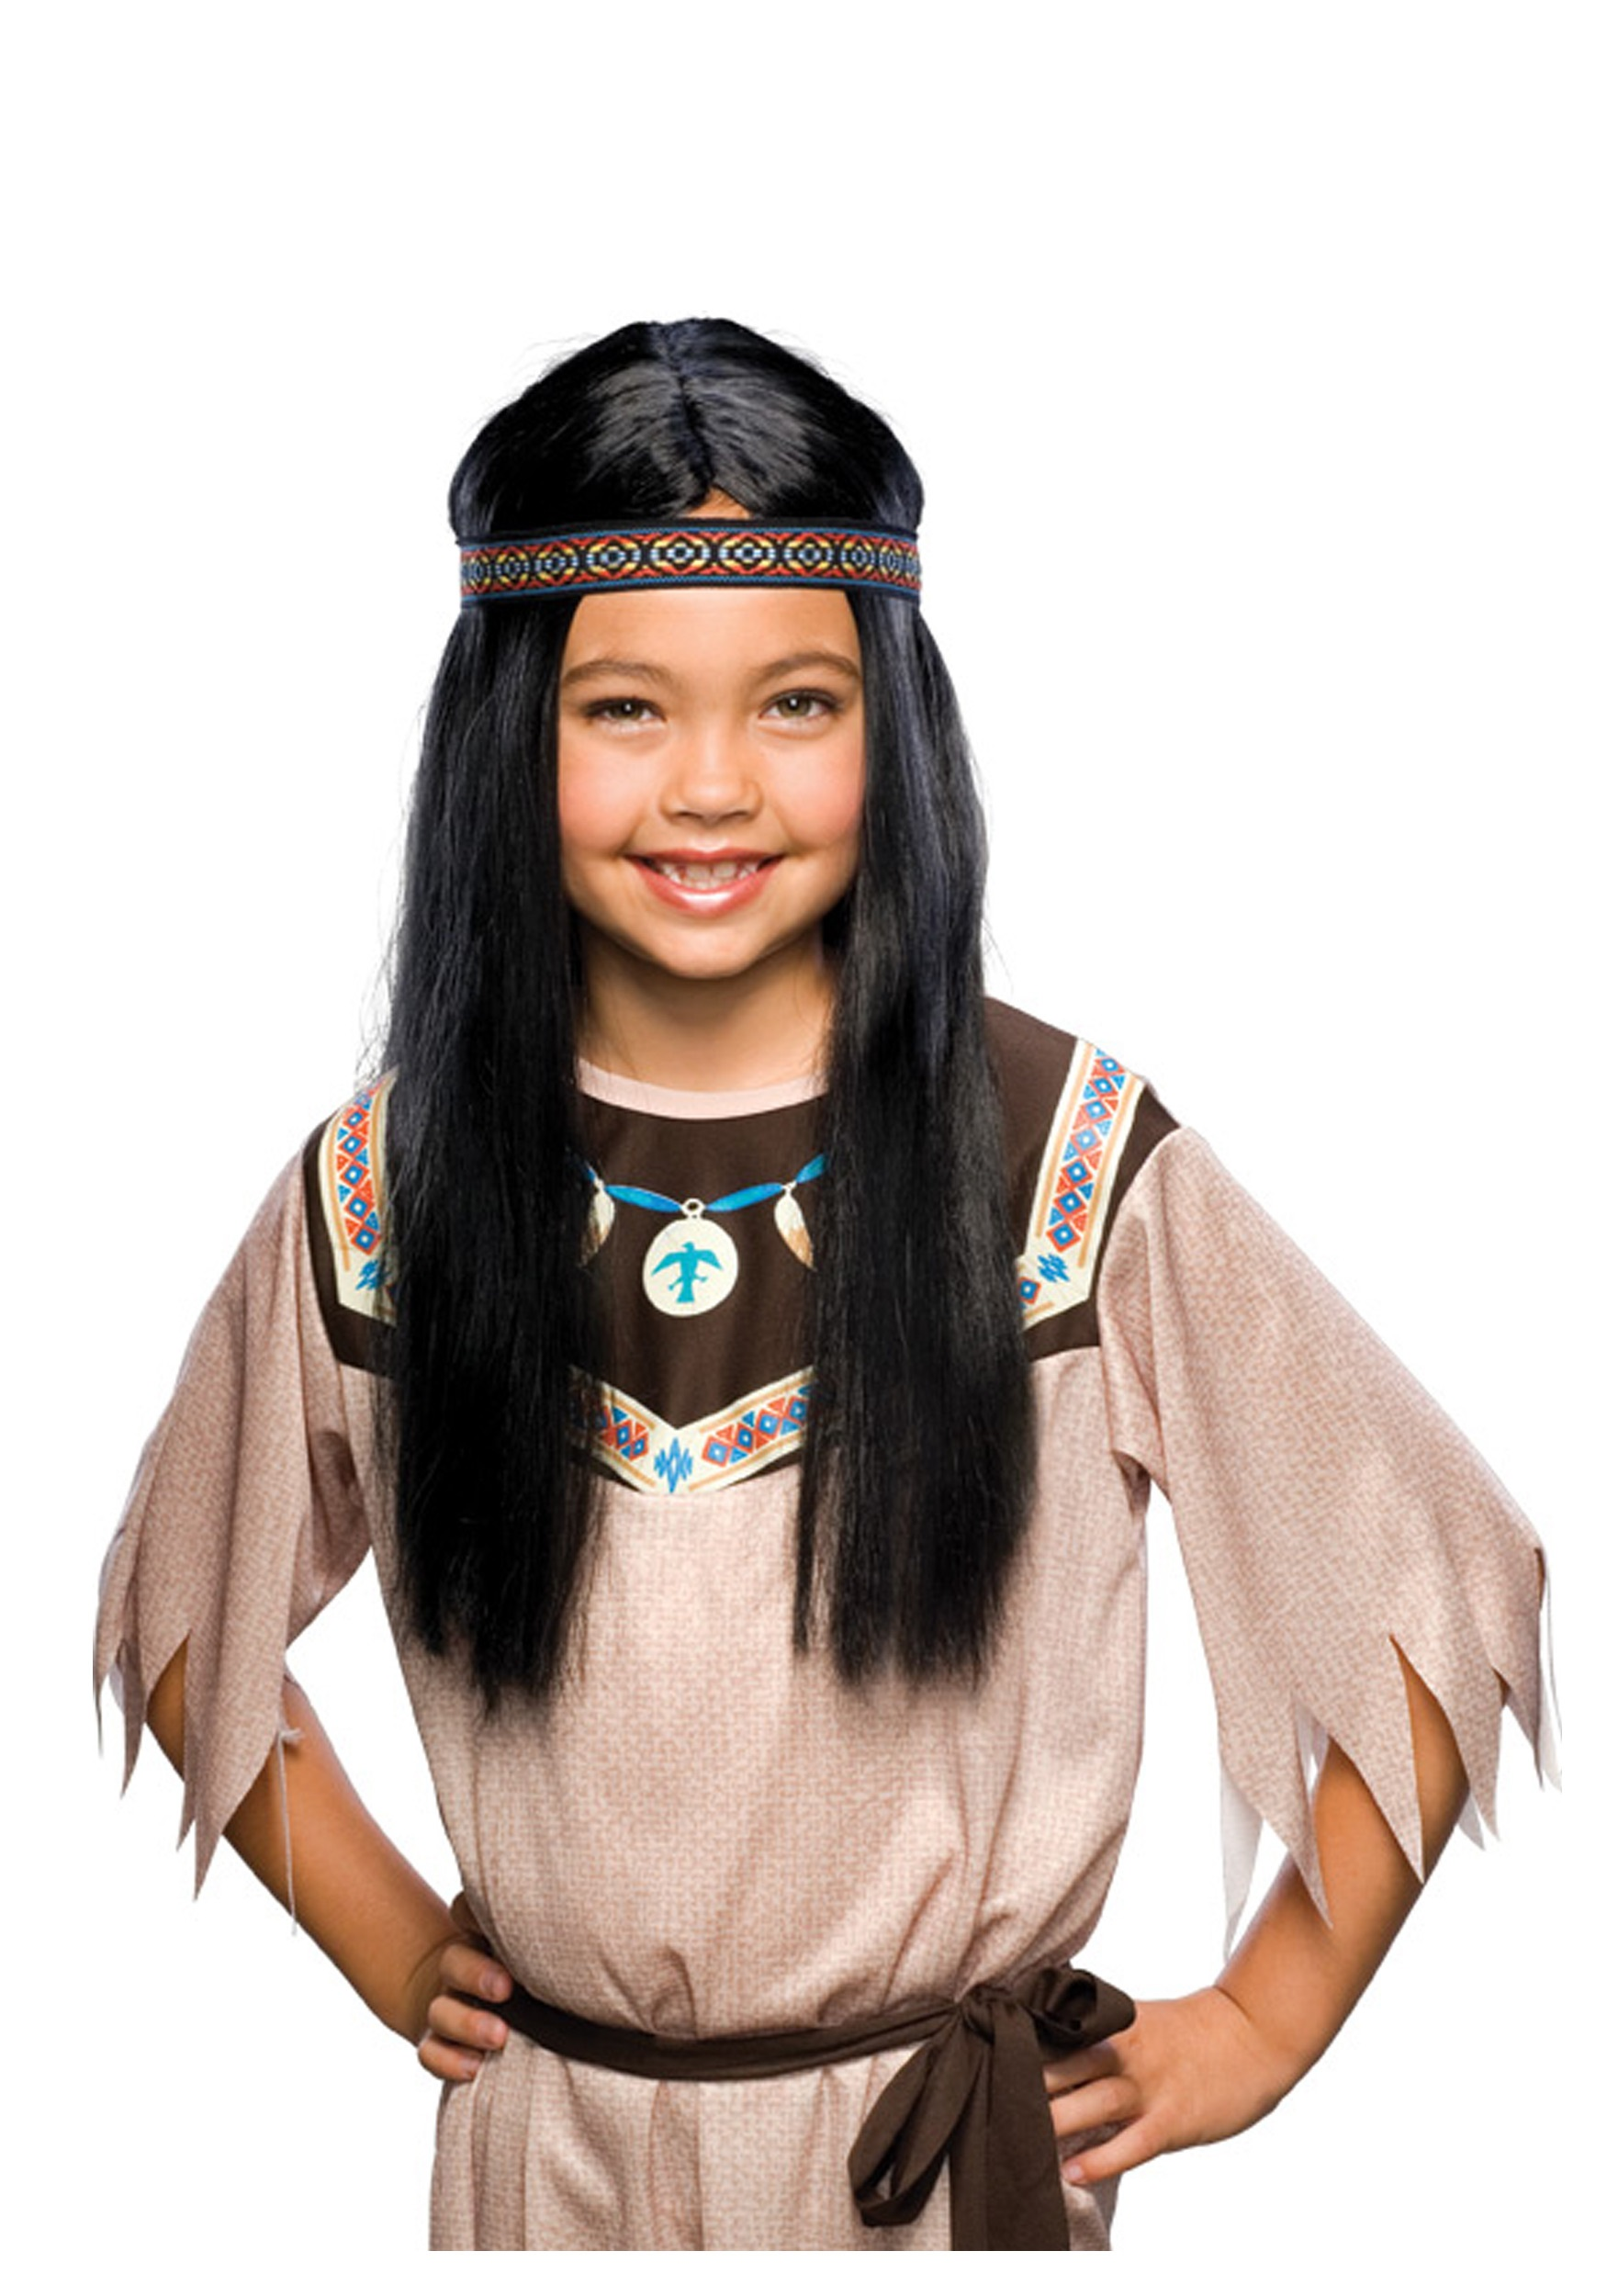 Childs Pocahontas Wig  sc 1 st  Halloween Costume & Childs Pocahontas Wig - Kids Native American Indian Costume Wigs